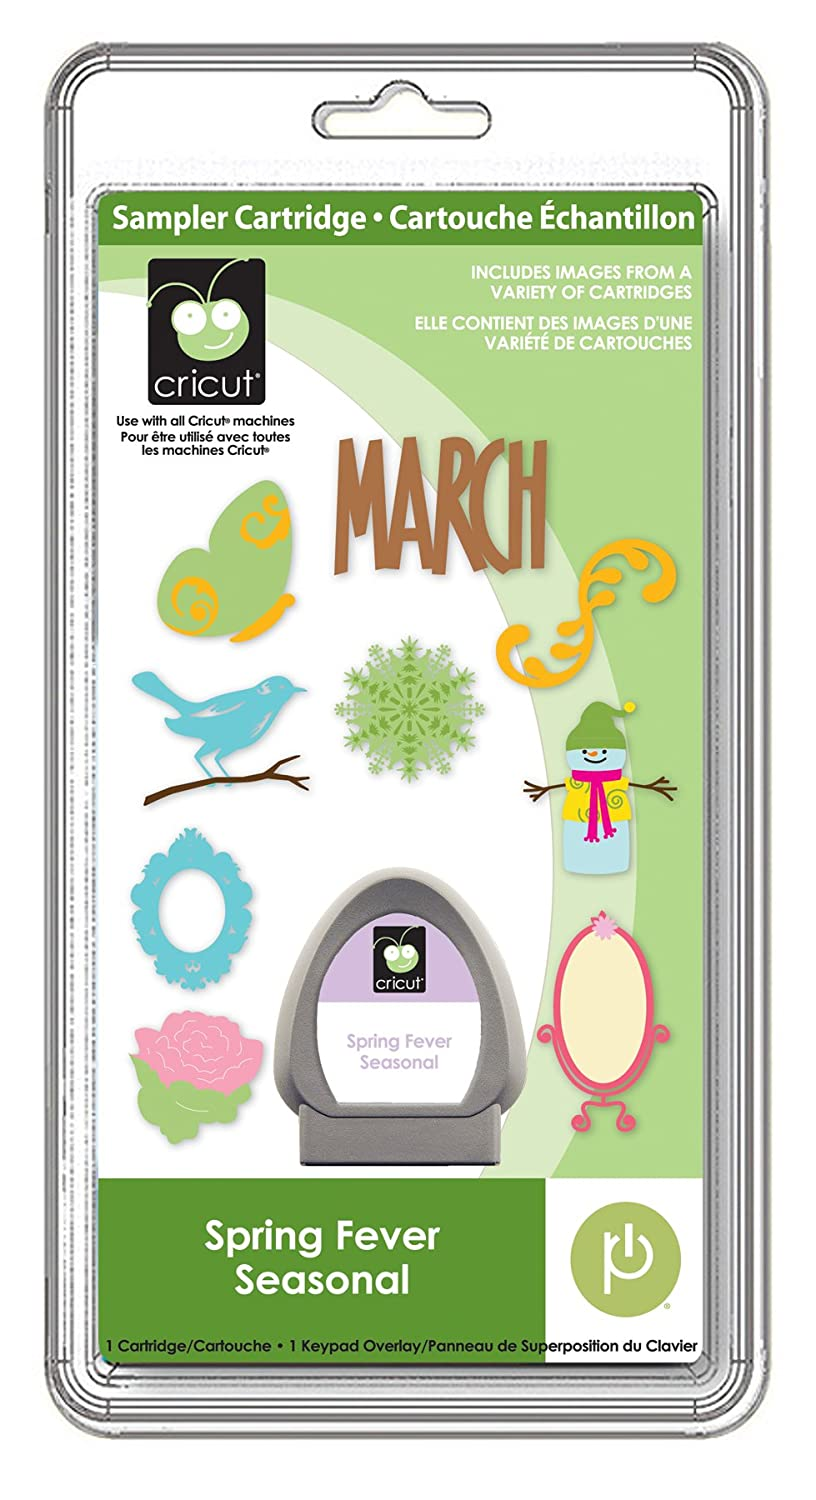 Spring Fever Seasonal Cricut Sampler Cartridge Provo Craft/ Cricut